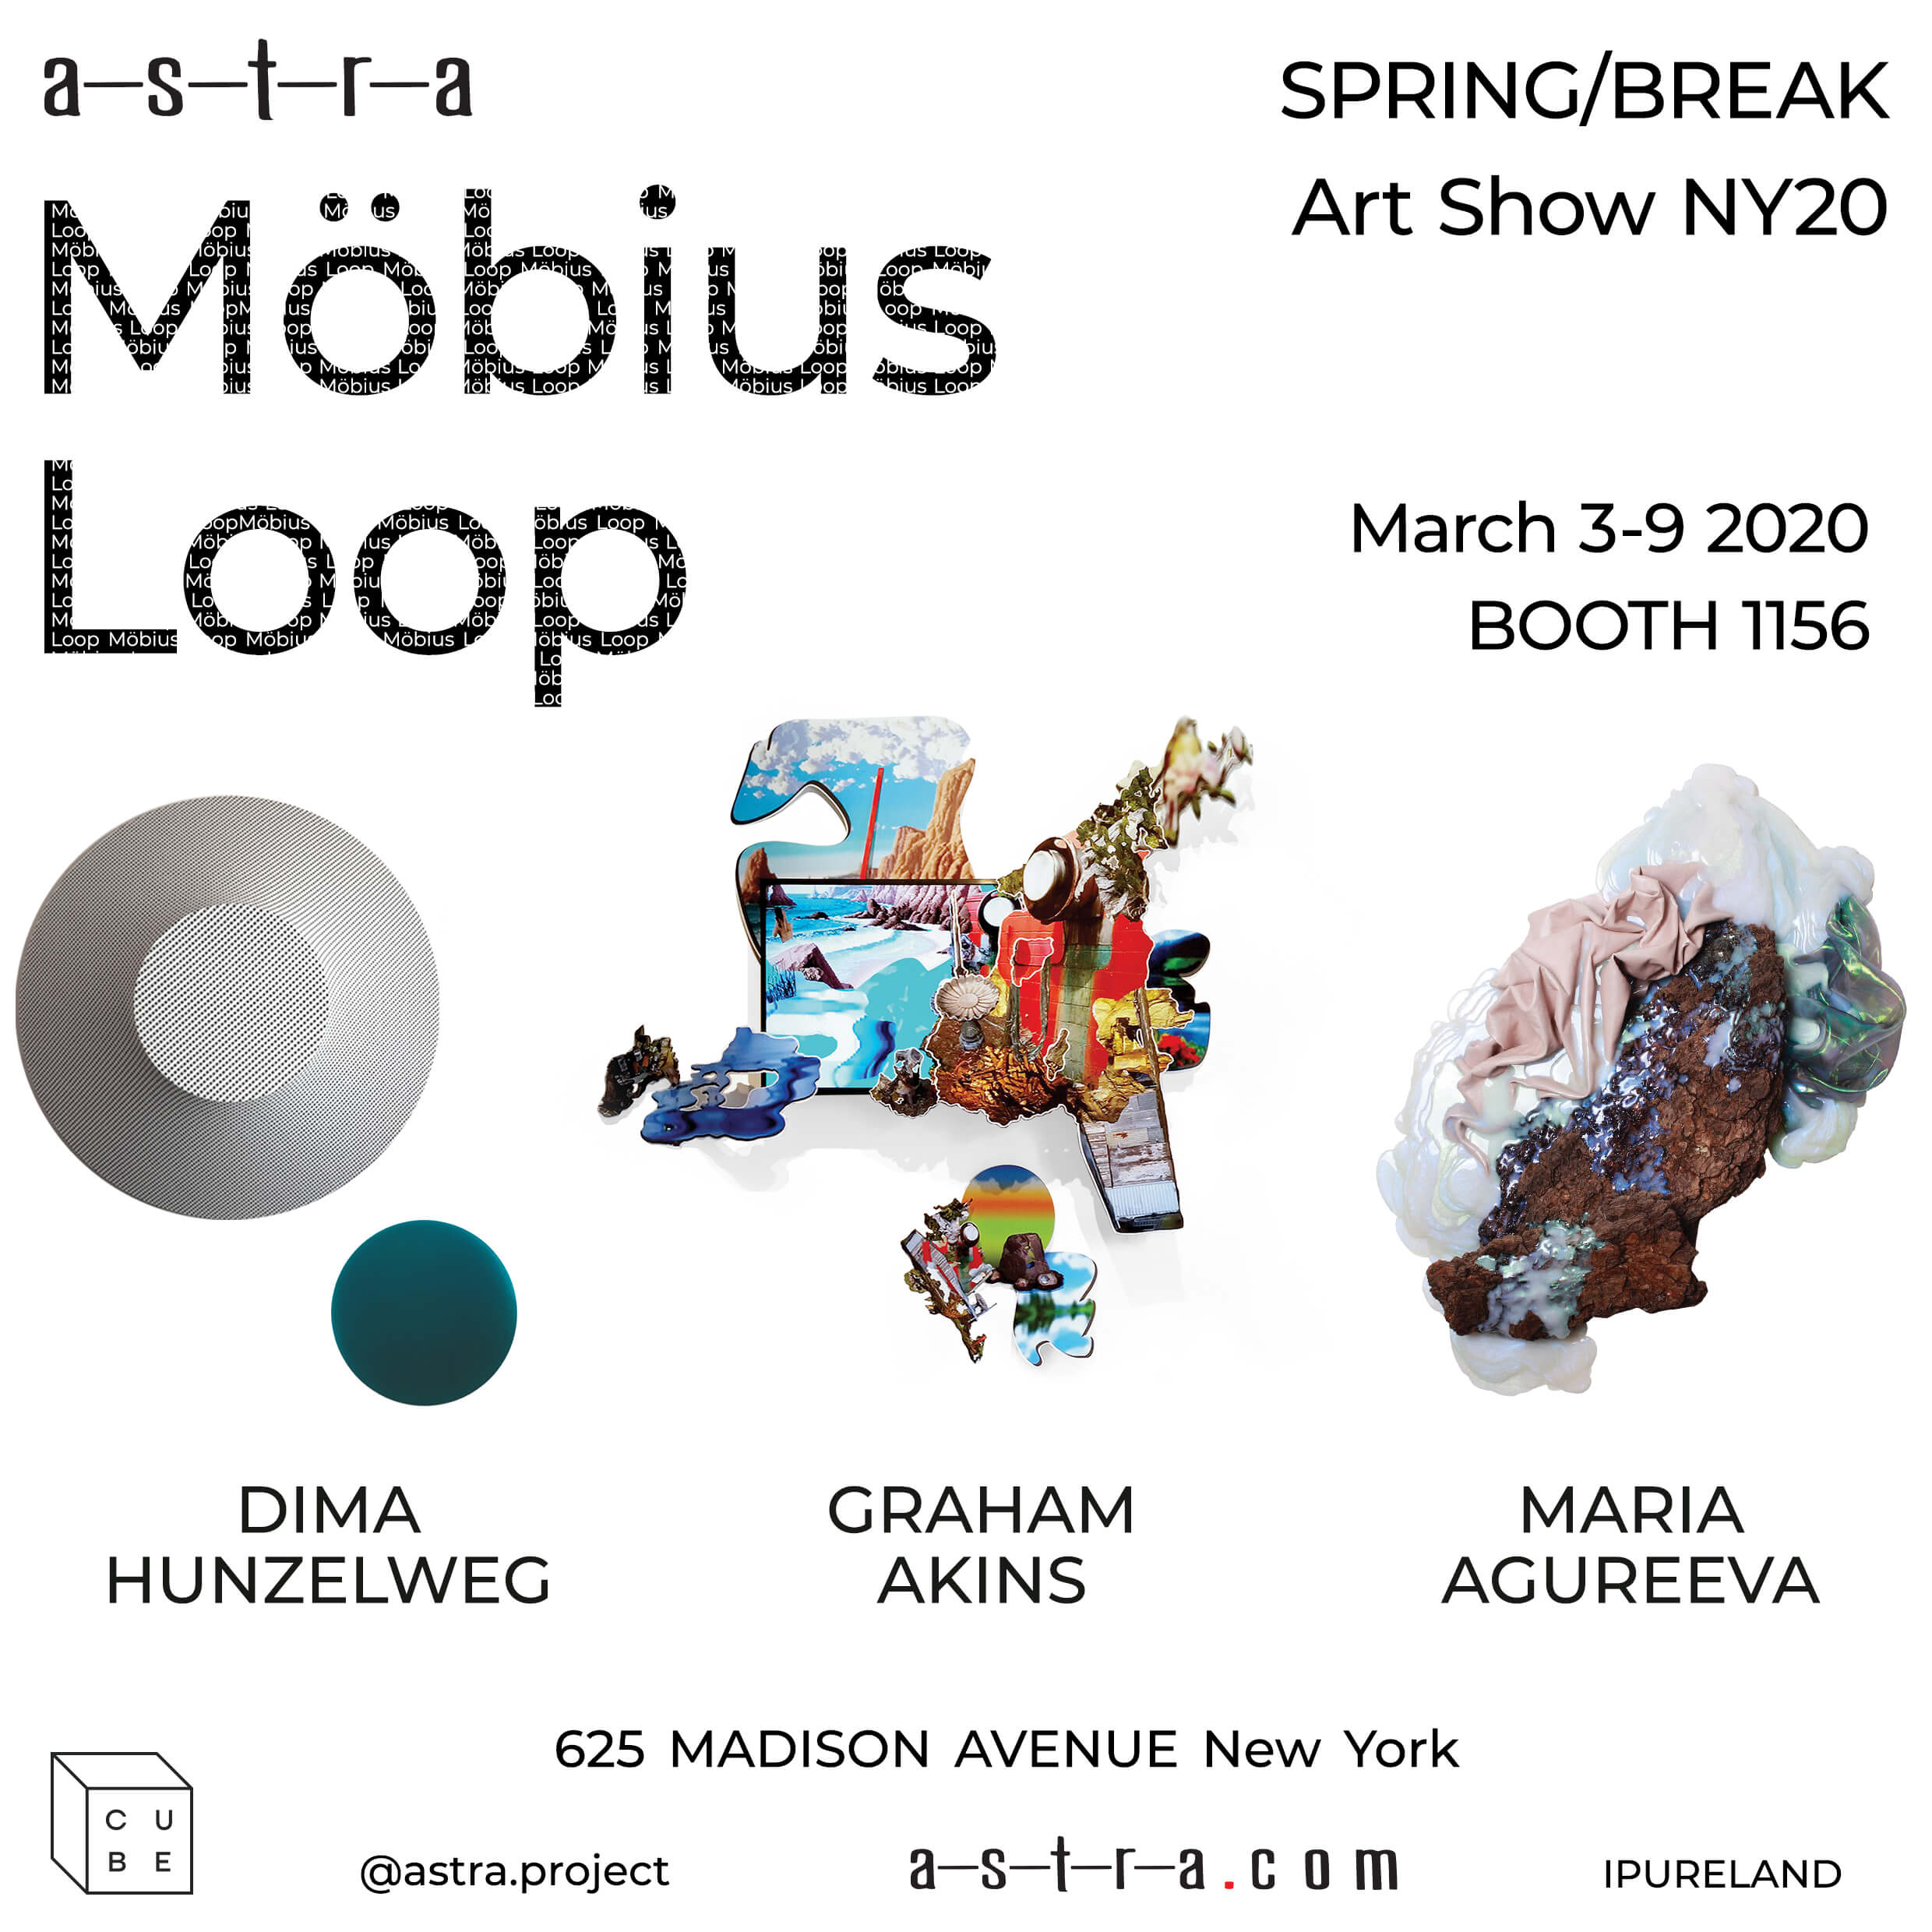 SPRING/BREAK Art Show NY20